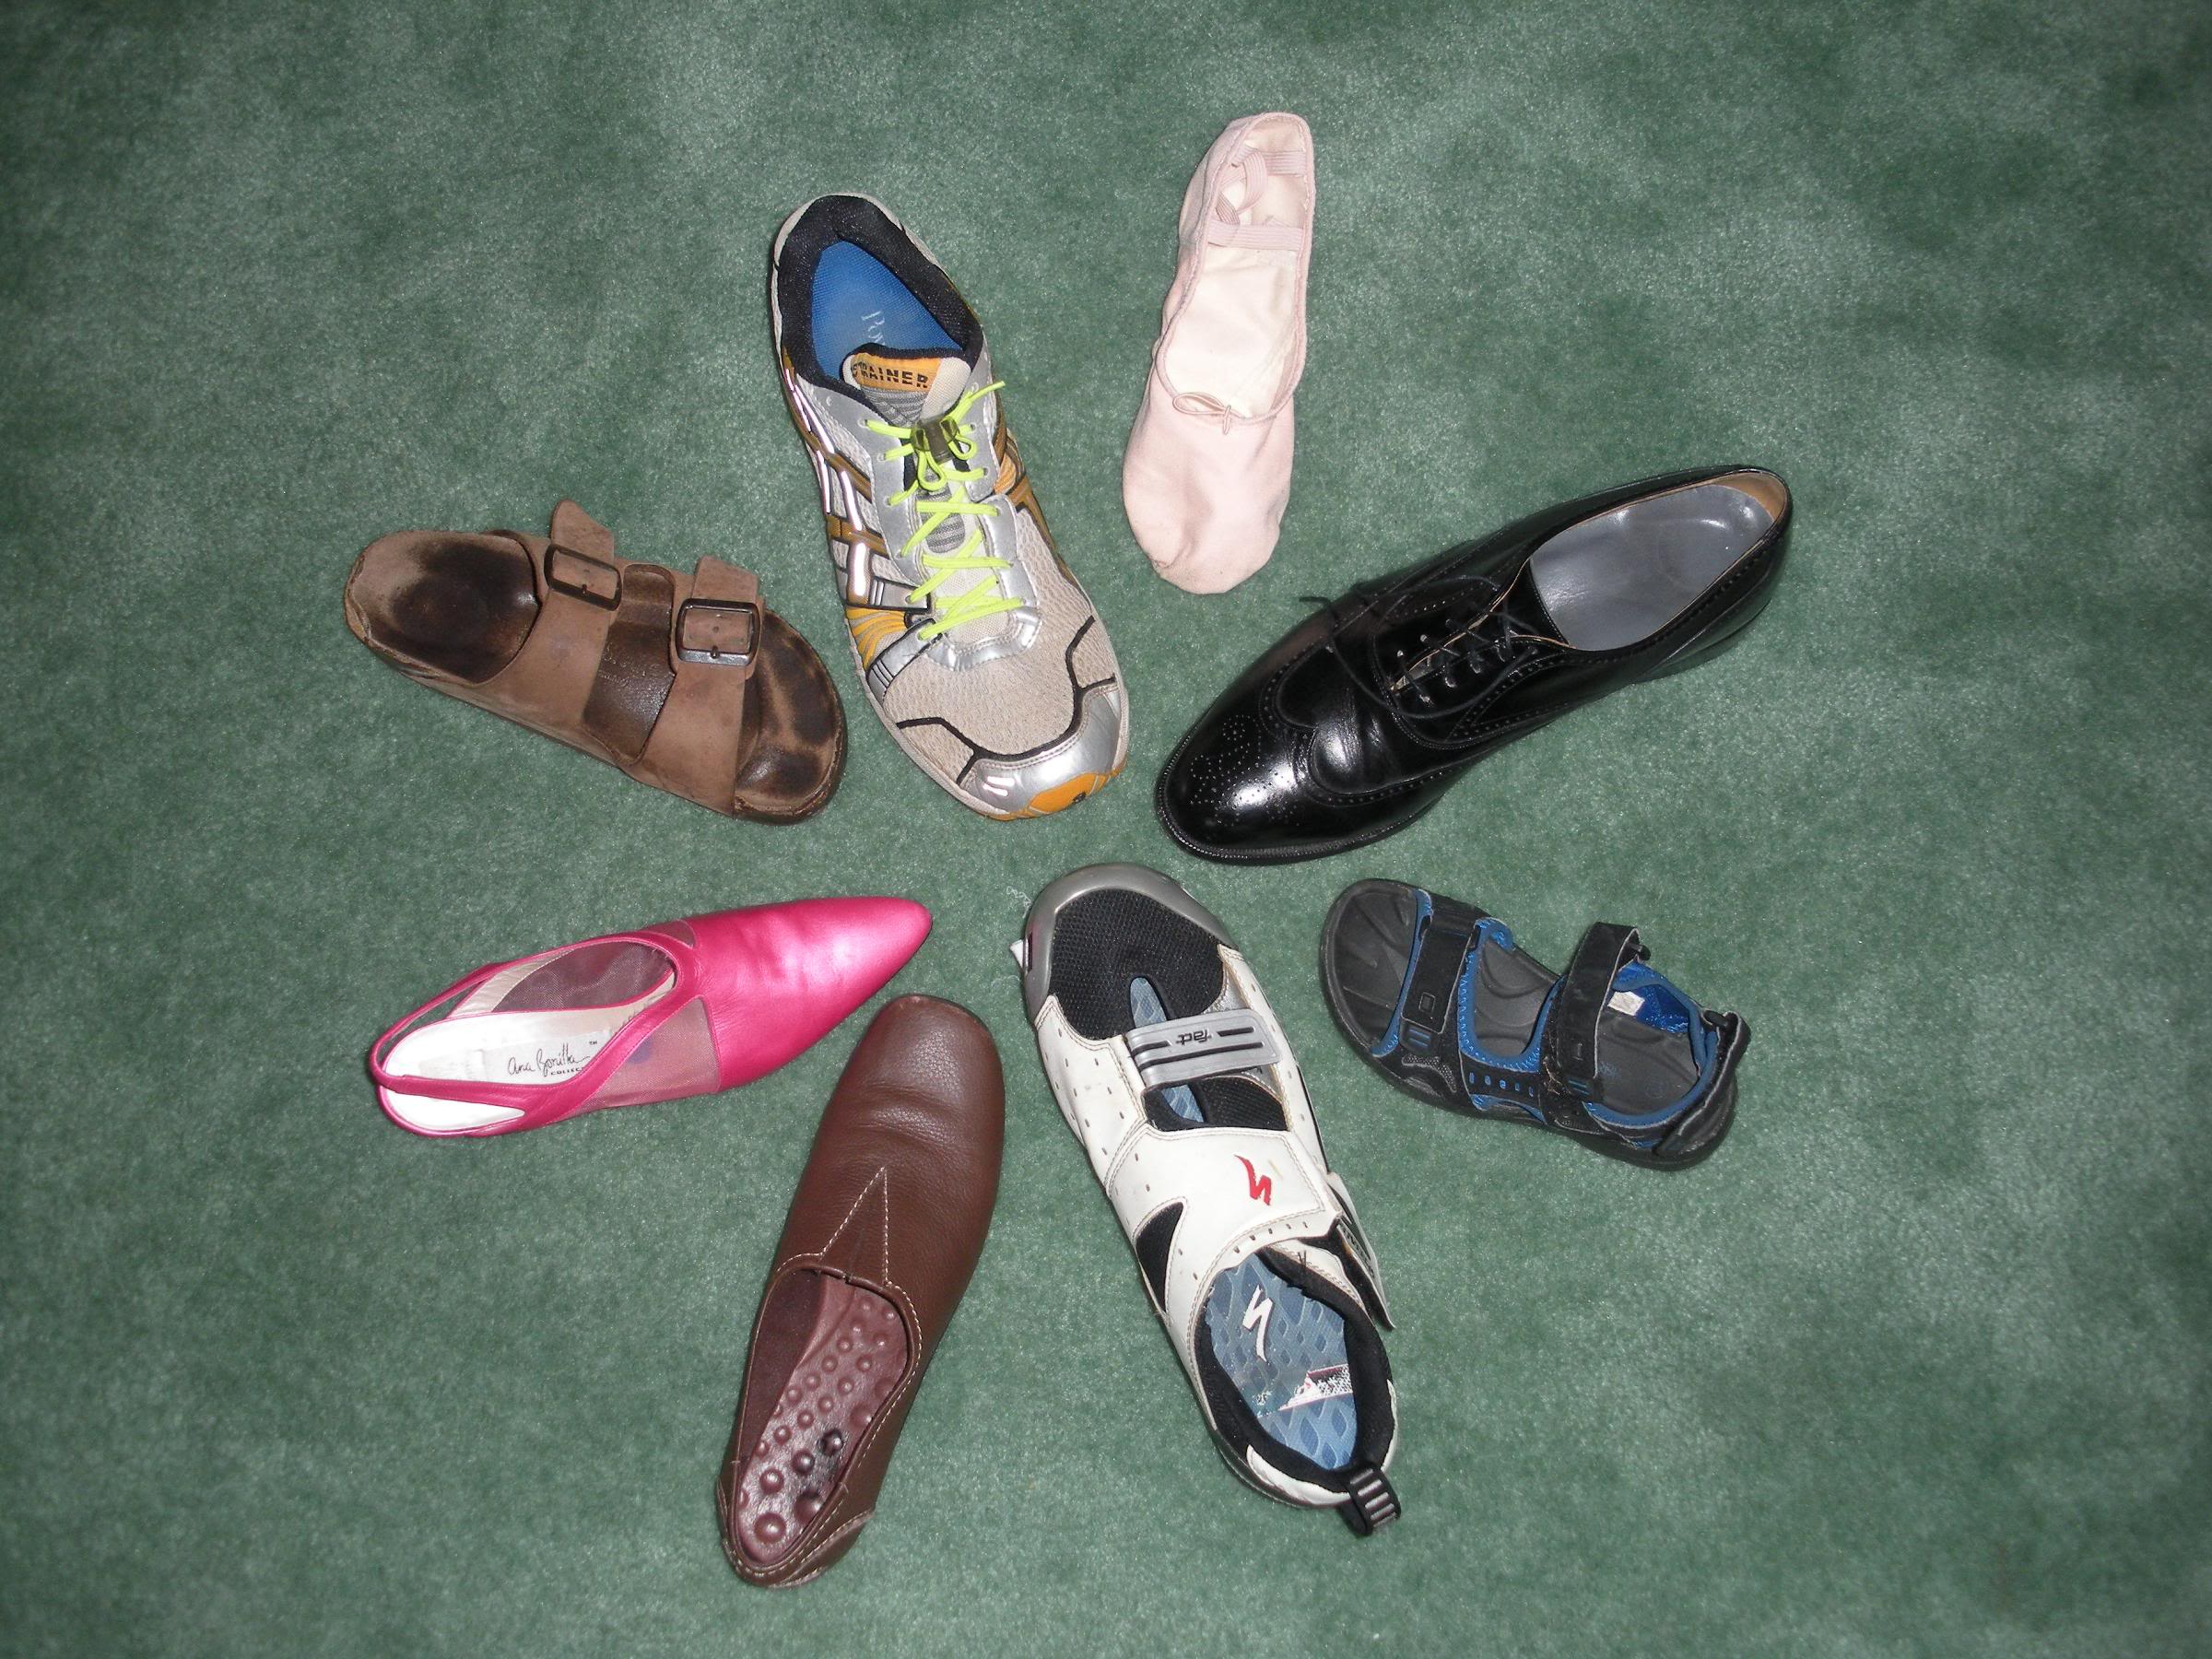 walking in someone elses shoes Philippians 1:28 paul wrote in you have heard the old saying, learn to walk a mile in someone else's shoes in other words, be sympathetic to the situation of others something very similar to this is said here.